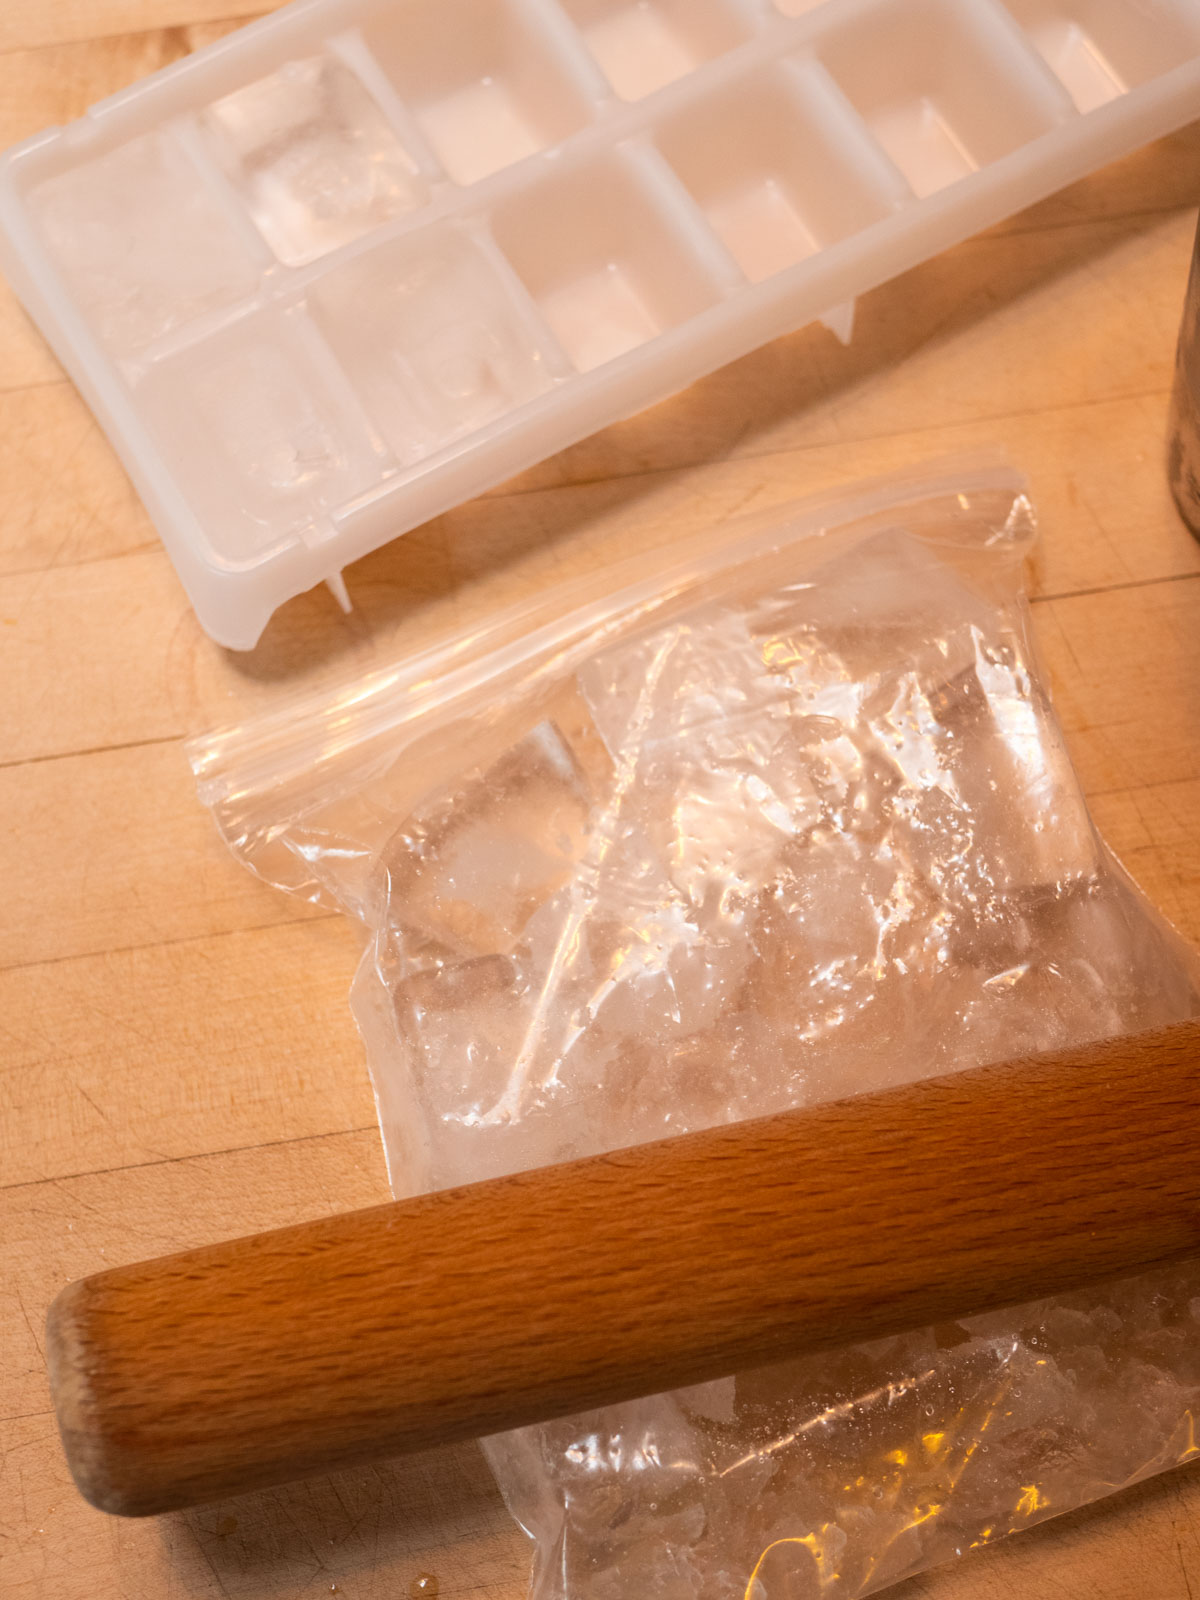 Bag of ice with ice tray and rolling pin to crush